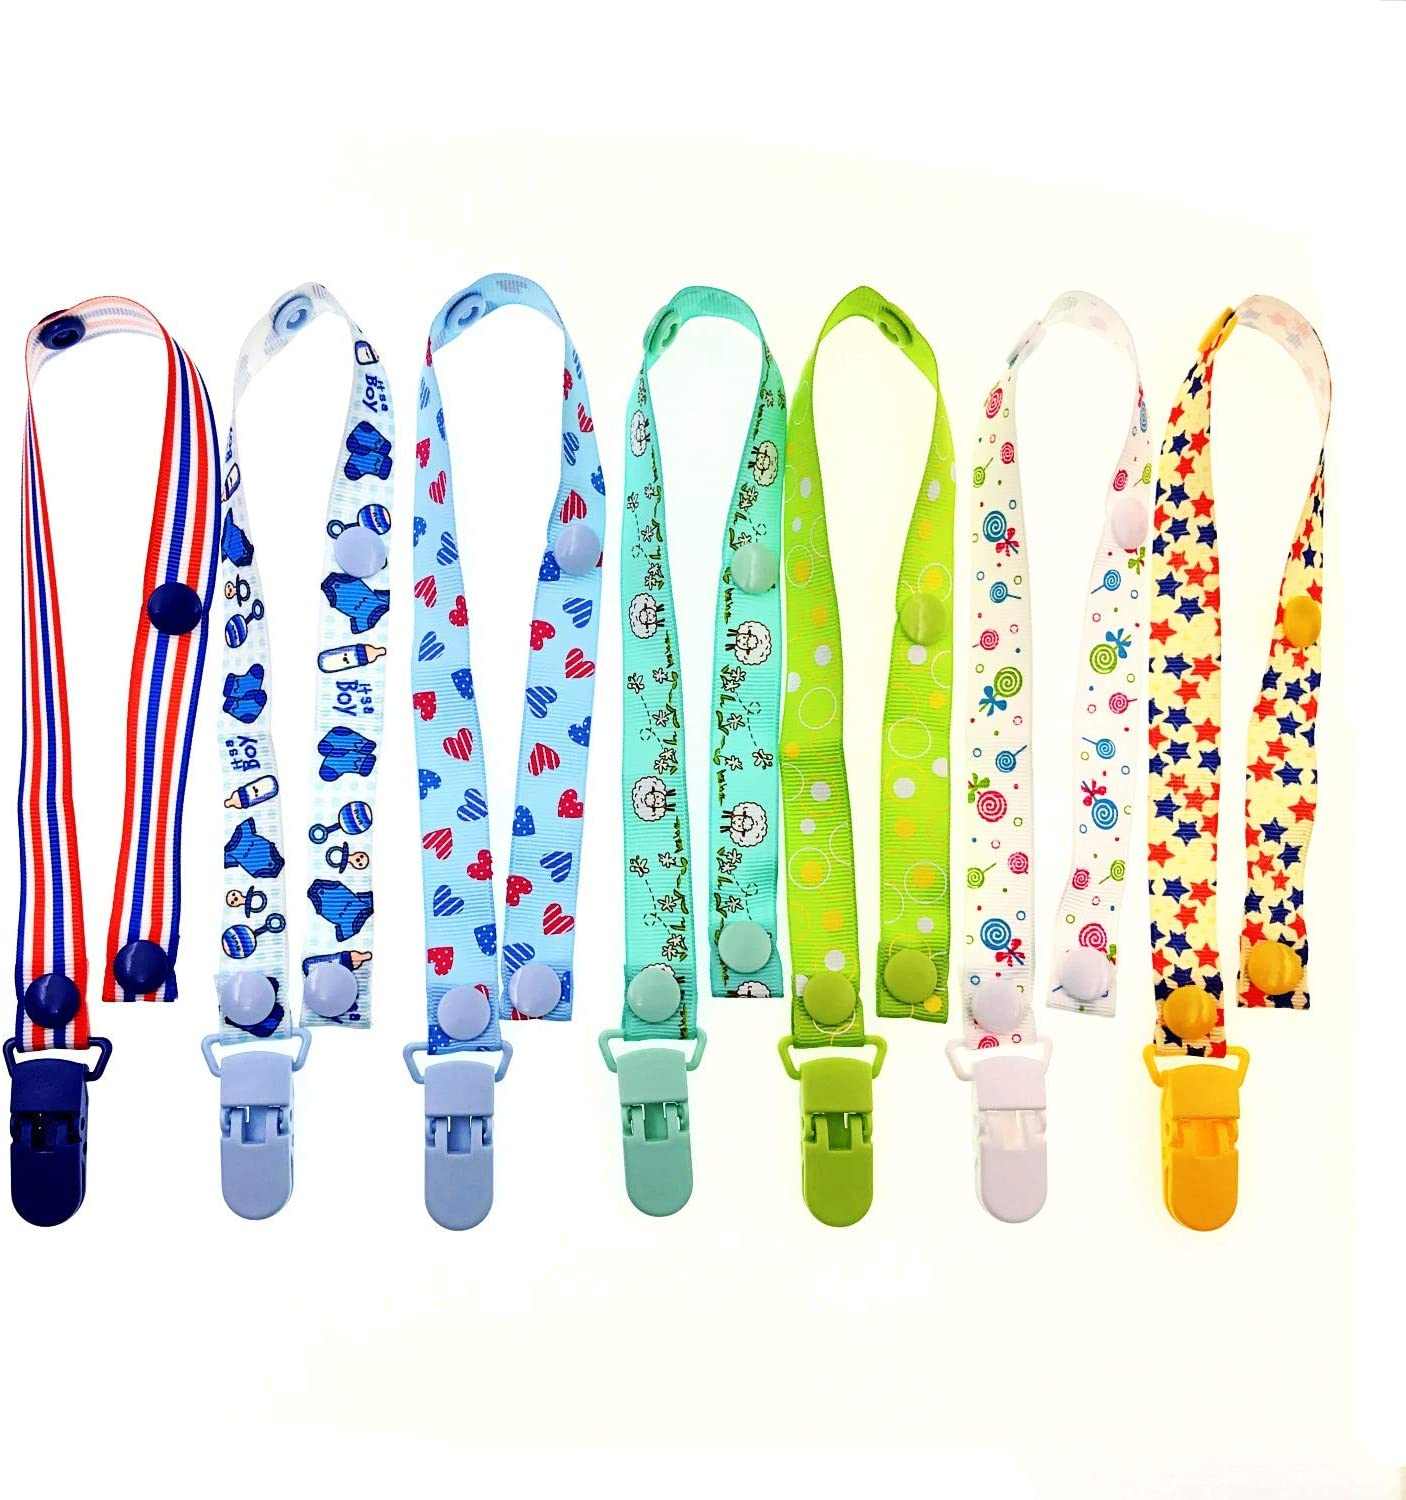 7 x Pacifier Clip Dummy Holder Straps for Boys Suitable for Baby mam soothers JZK 7 x Multicolor Silicone Baby Dummy Clip Ring for Boys